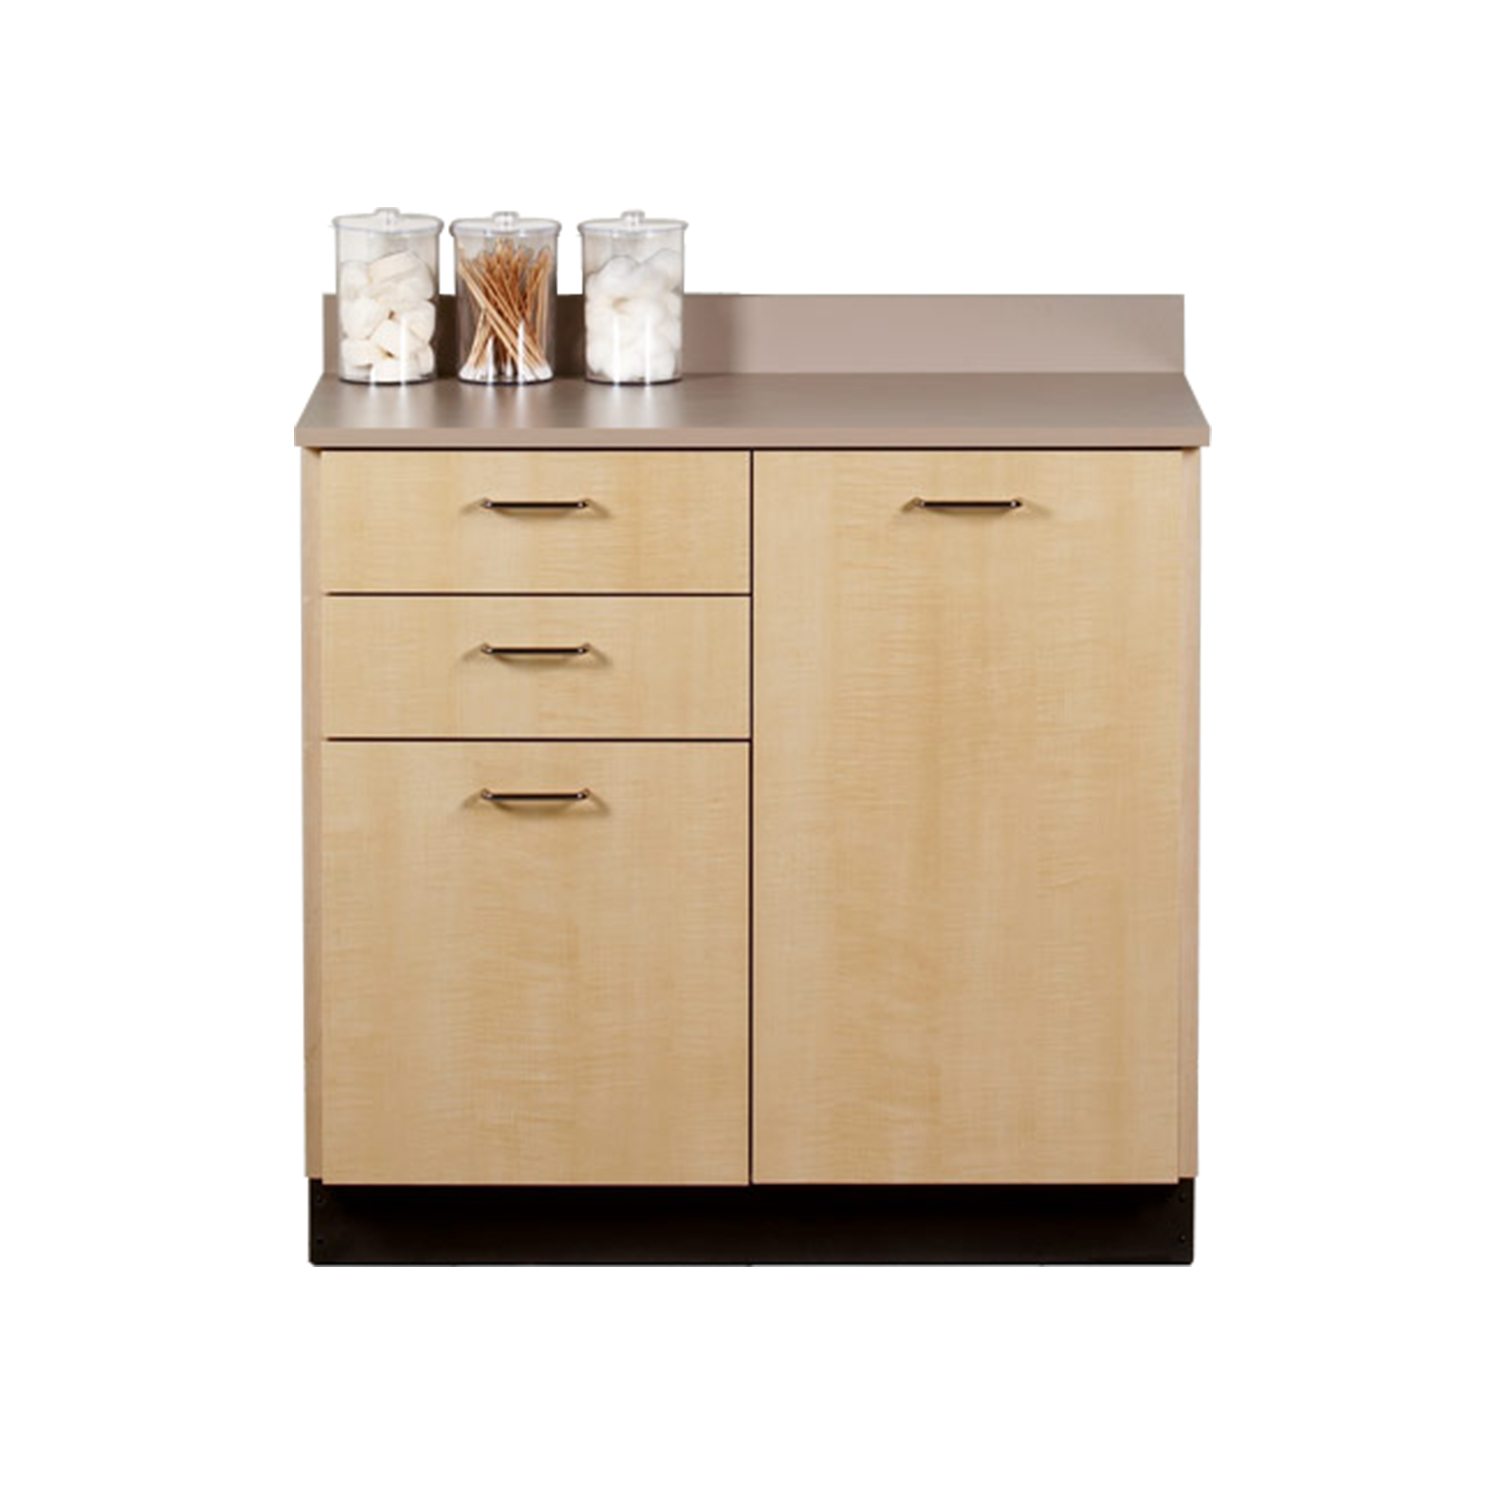 Clinton Base Cabinet with 2 Doors and 2 Drawers